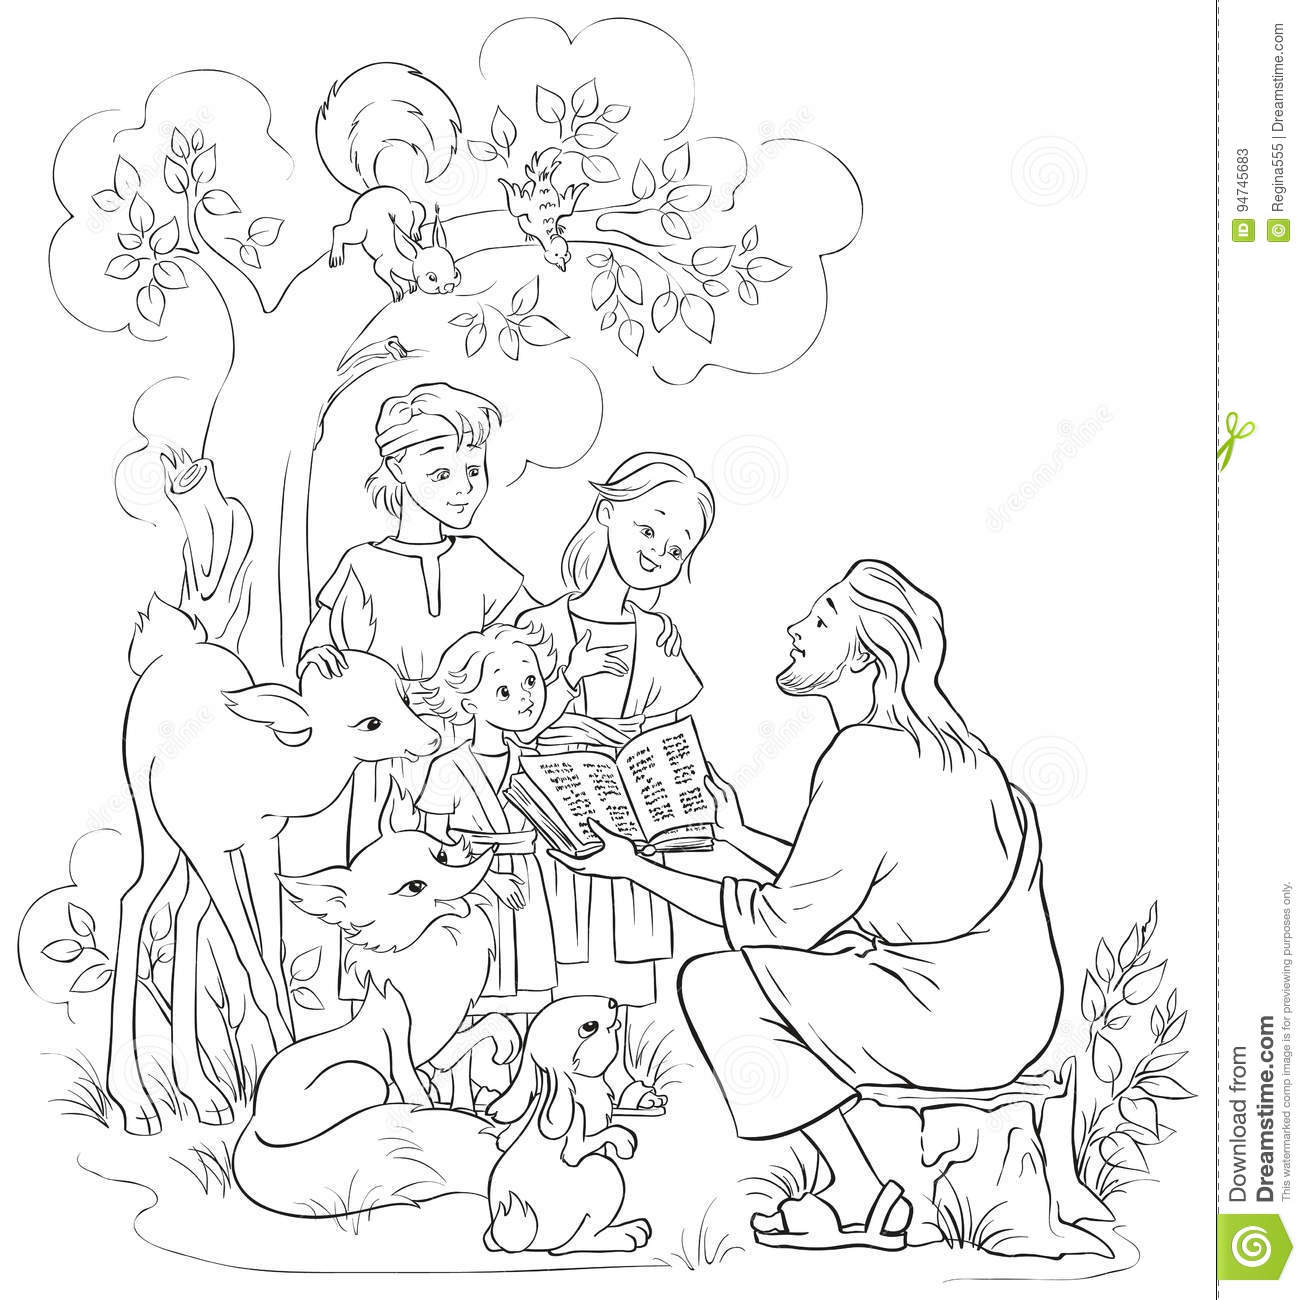 black and white bible coloring pages | Jesus Reading The Bible To Children And Animals. Coloring ...